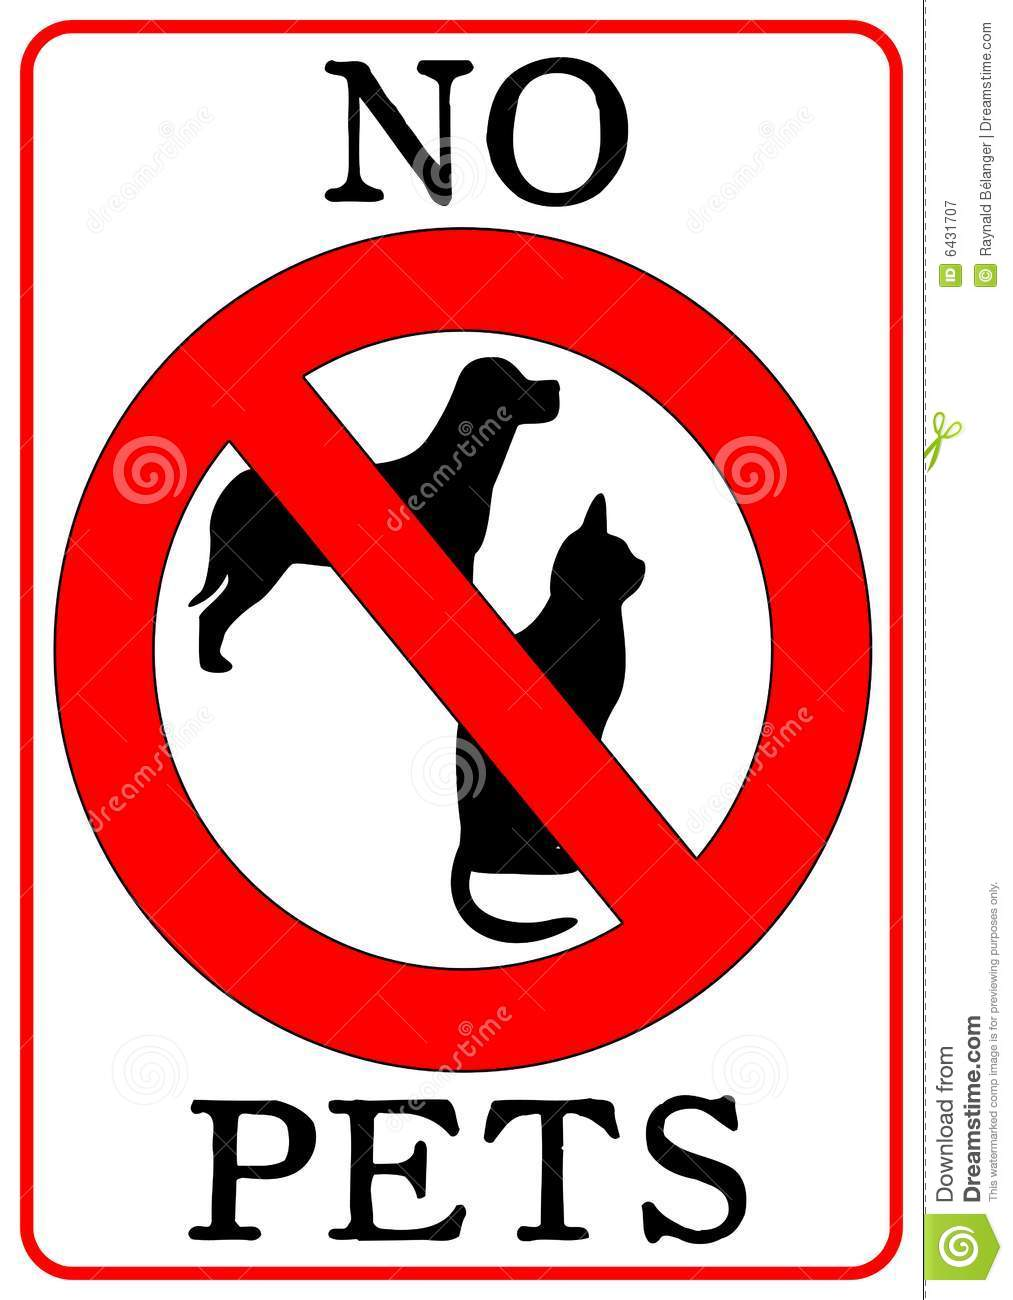 No pets sign isolated in white mr no pr no 3 5114 7